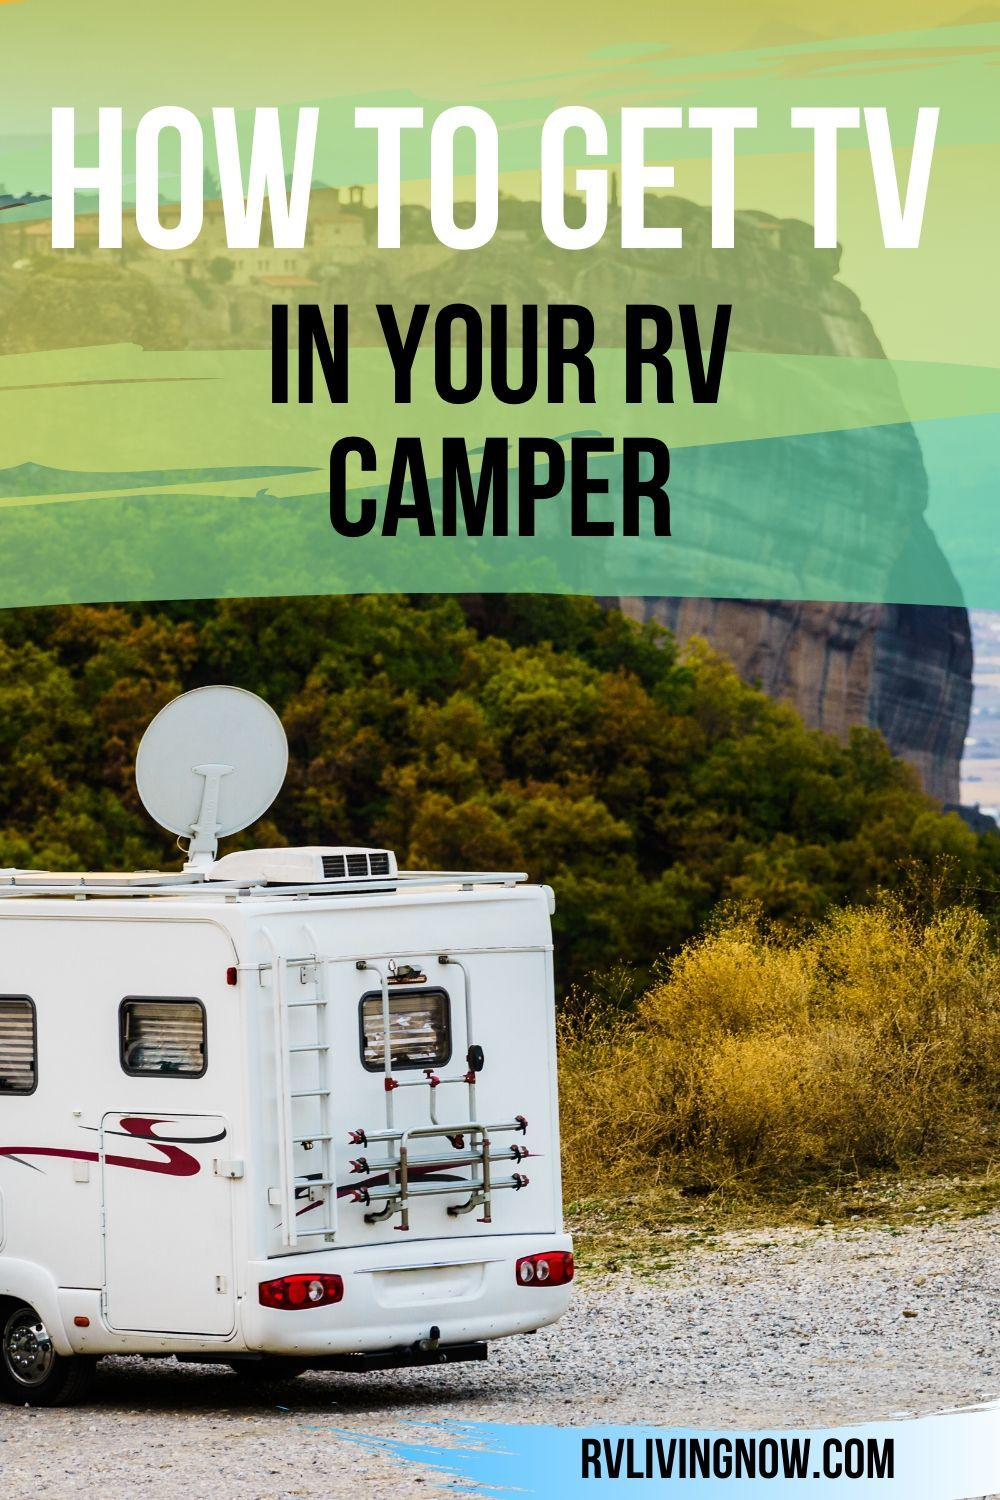 Best Options To Get Tv While Rv Camping In 2020 In 2020 Rv Tv Rv Rv Living Full Time